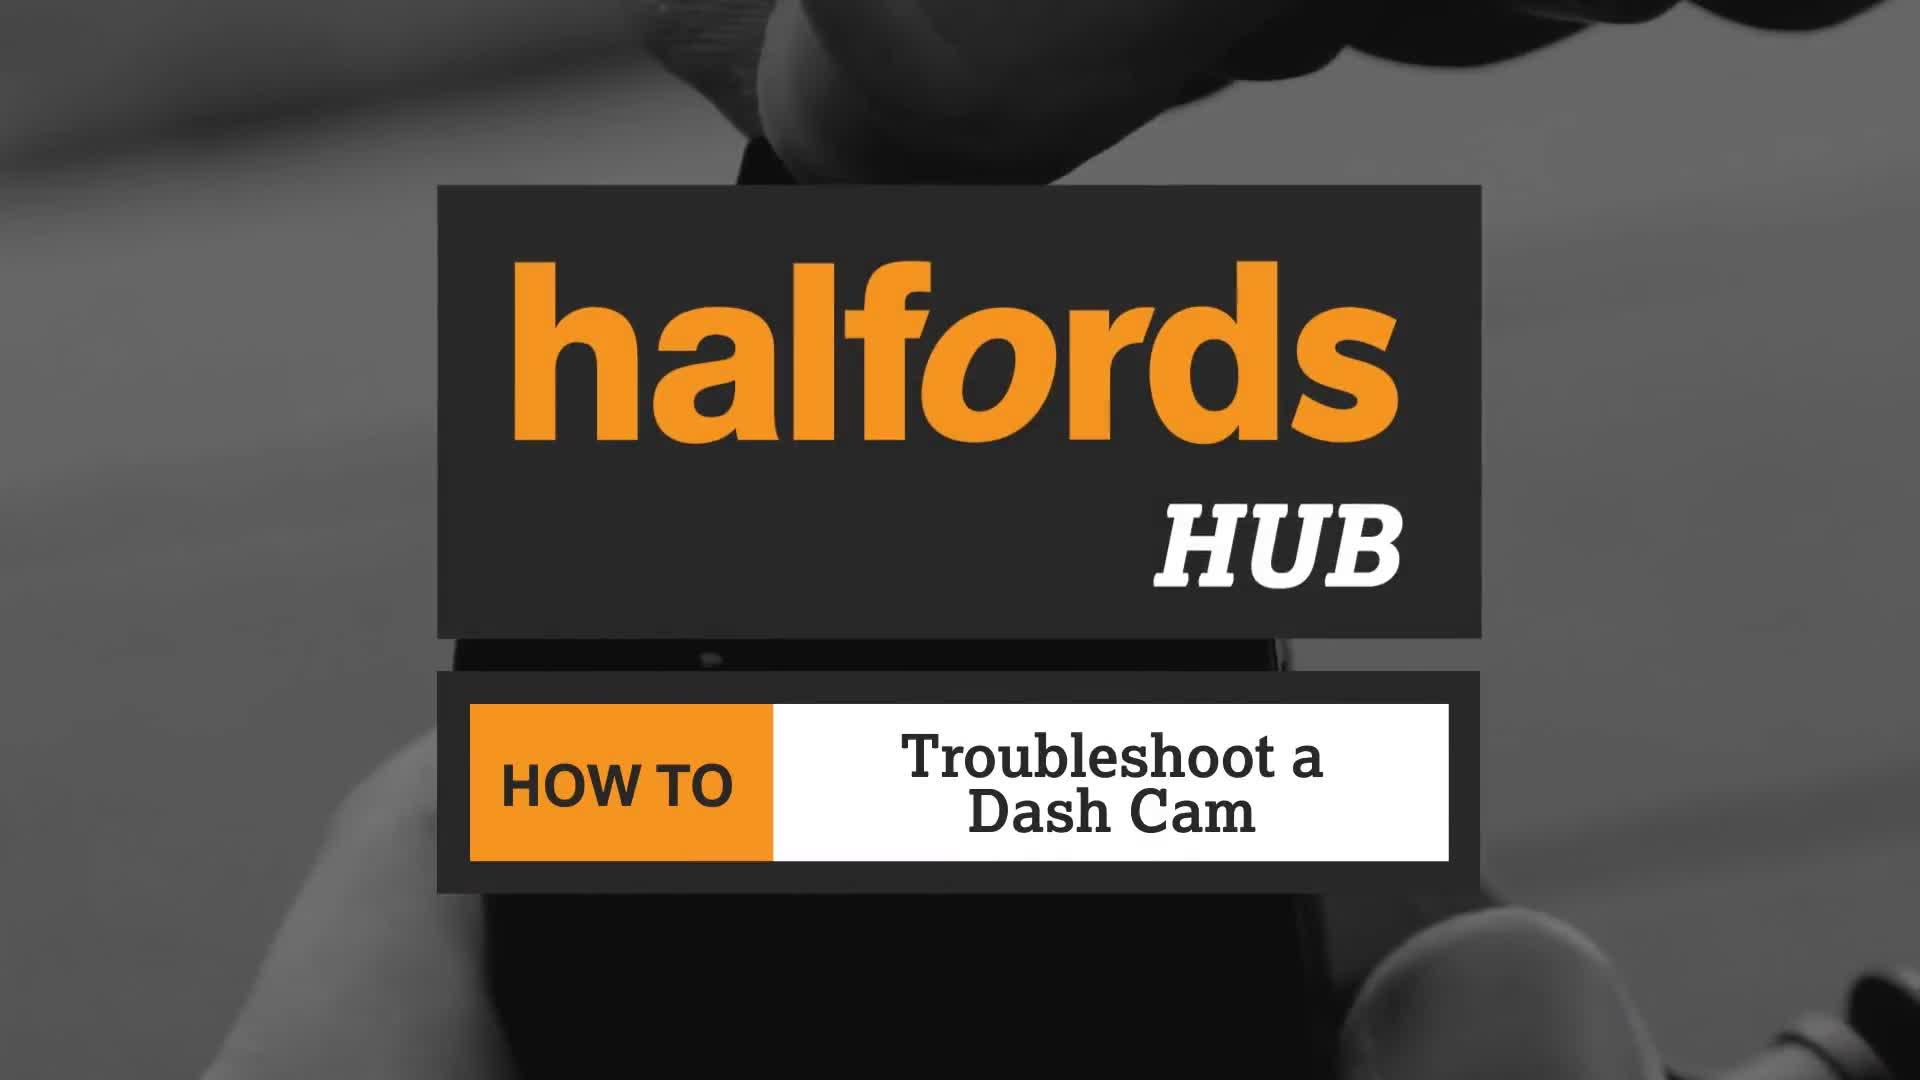 How to troubleshoot a dash cam